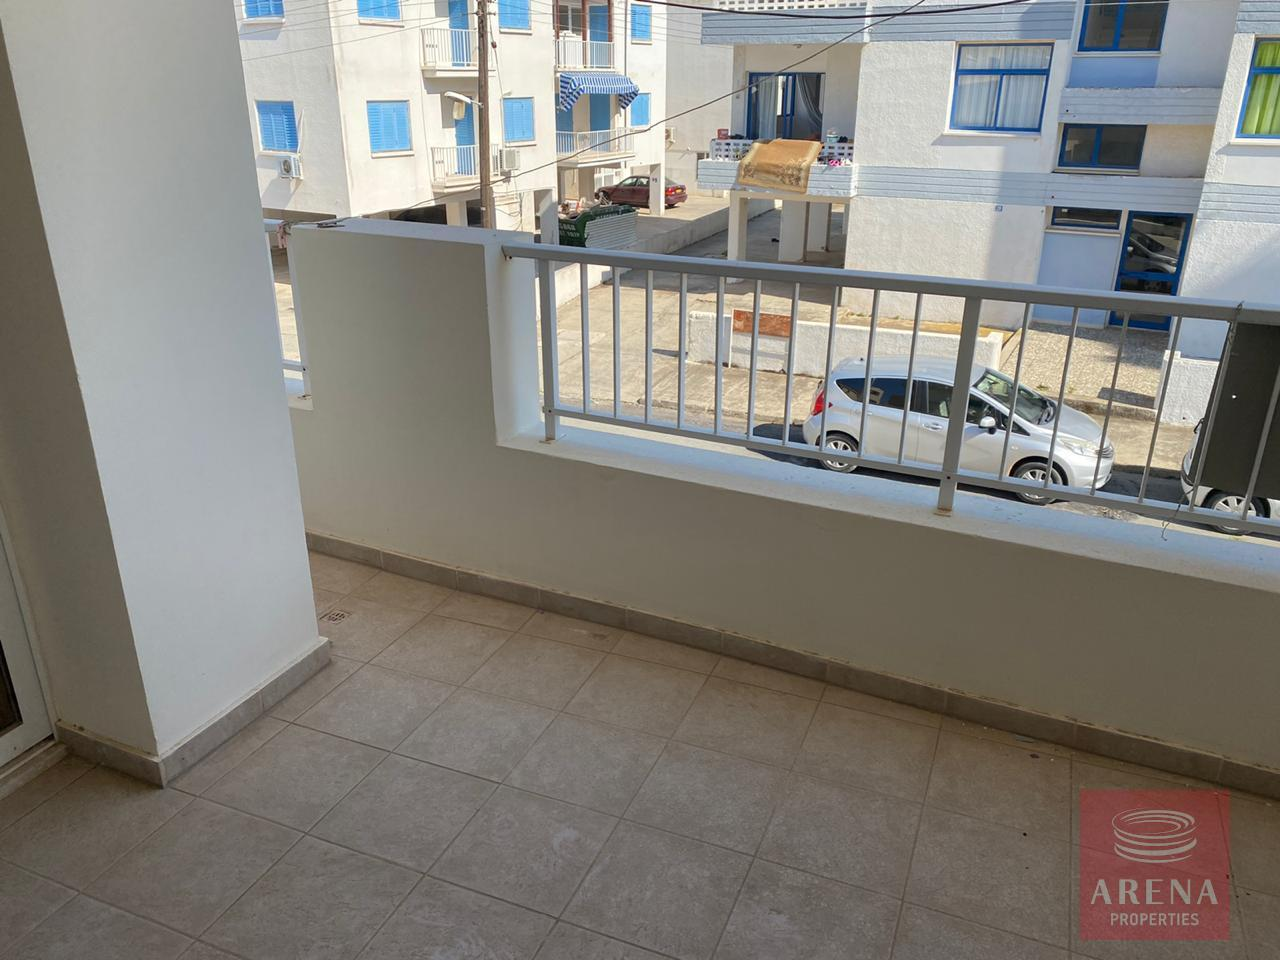 2 bed apartment in Kapparis - balcony